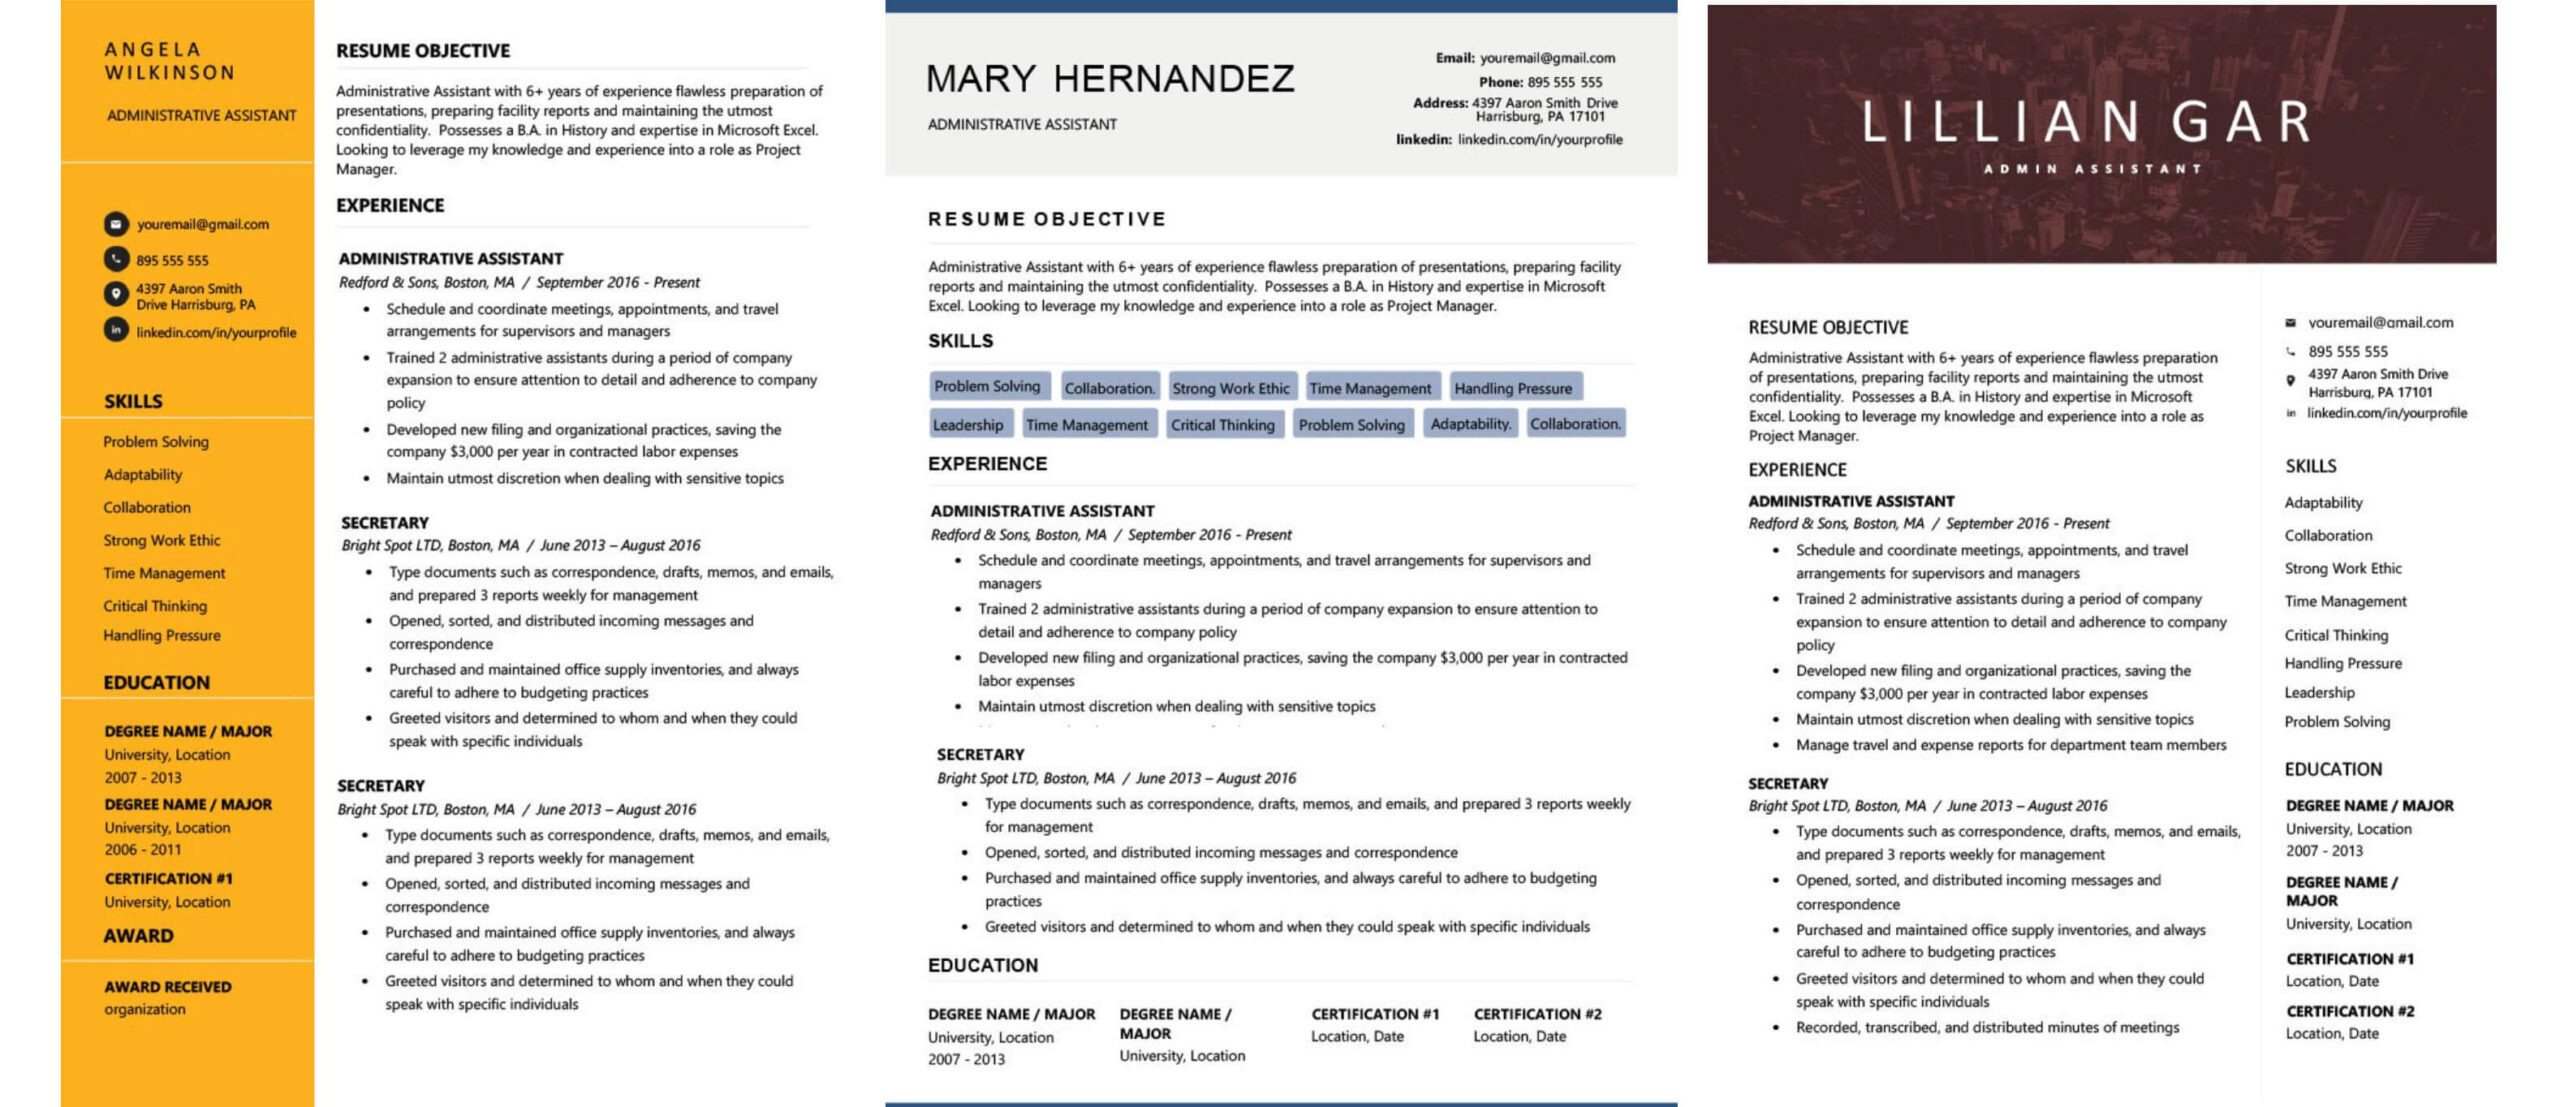 to write great data science resume dataquest sample for freshers creative templates free Resume Data Science Resume Sample For Freshers